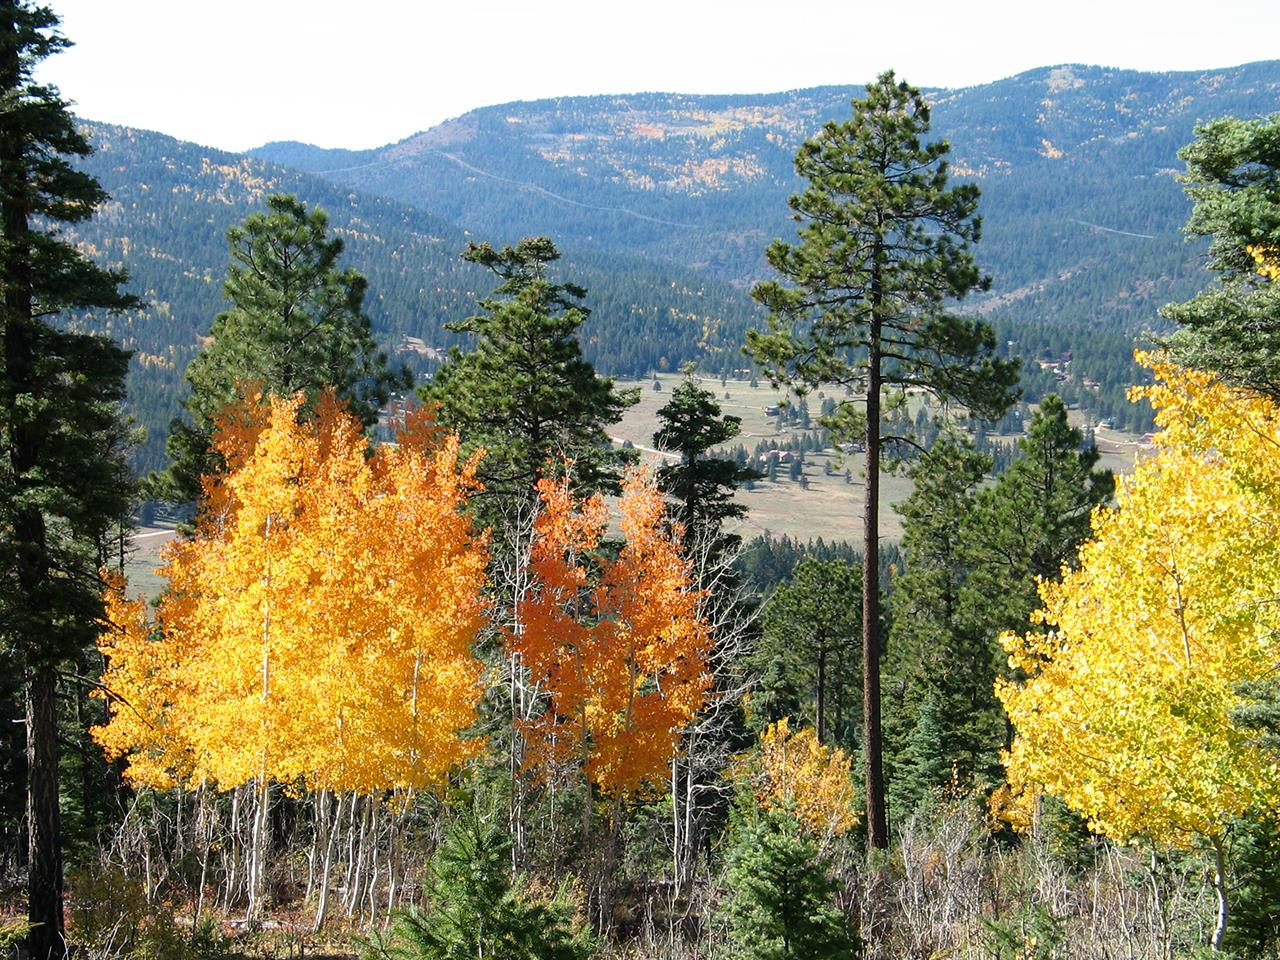 #Taos attractions #Fall Color #Sangre de Christo Mountains #Taos #New Mexico